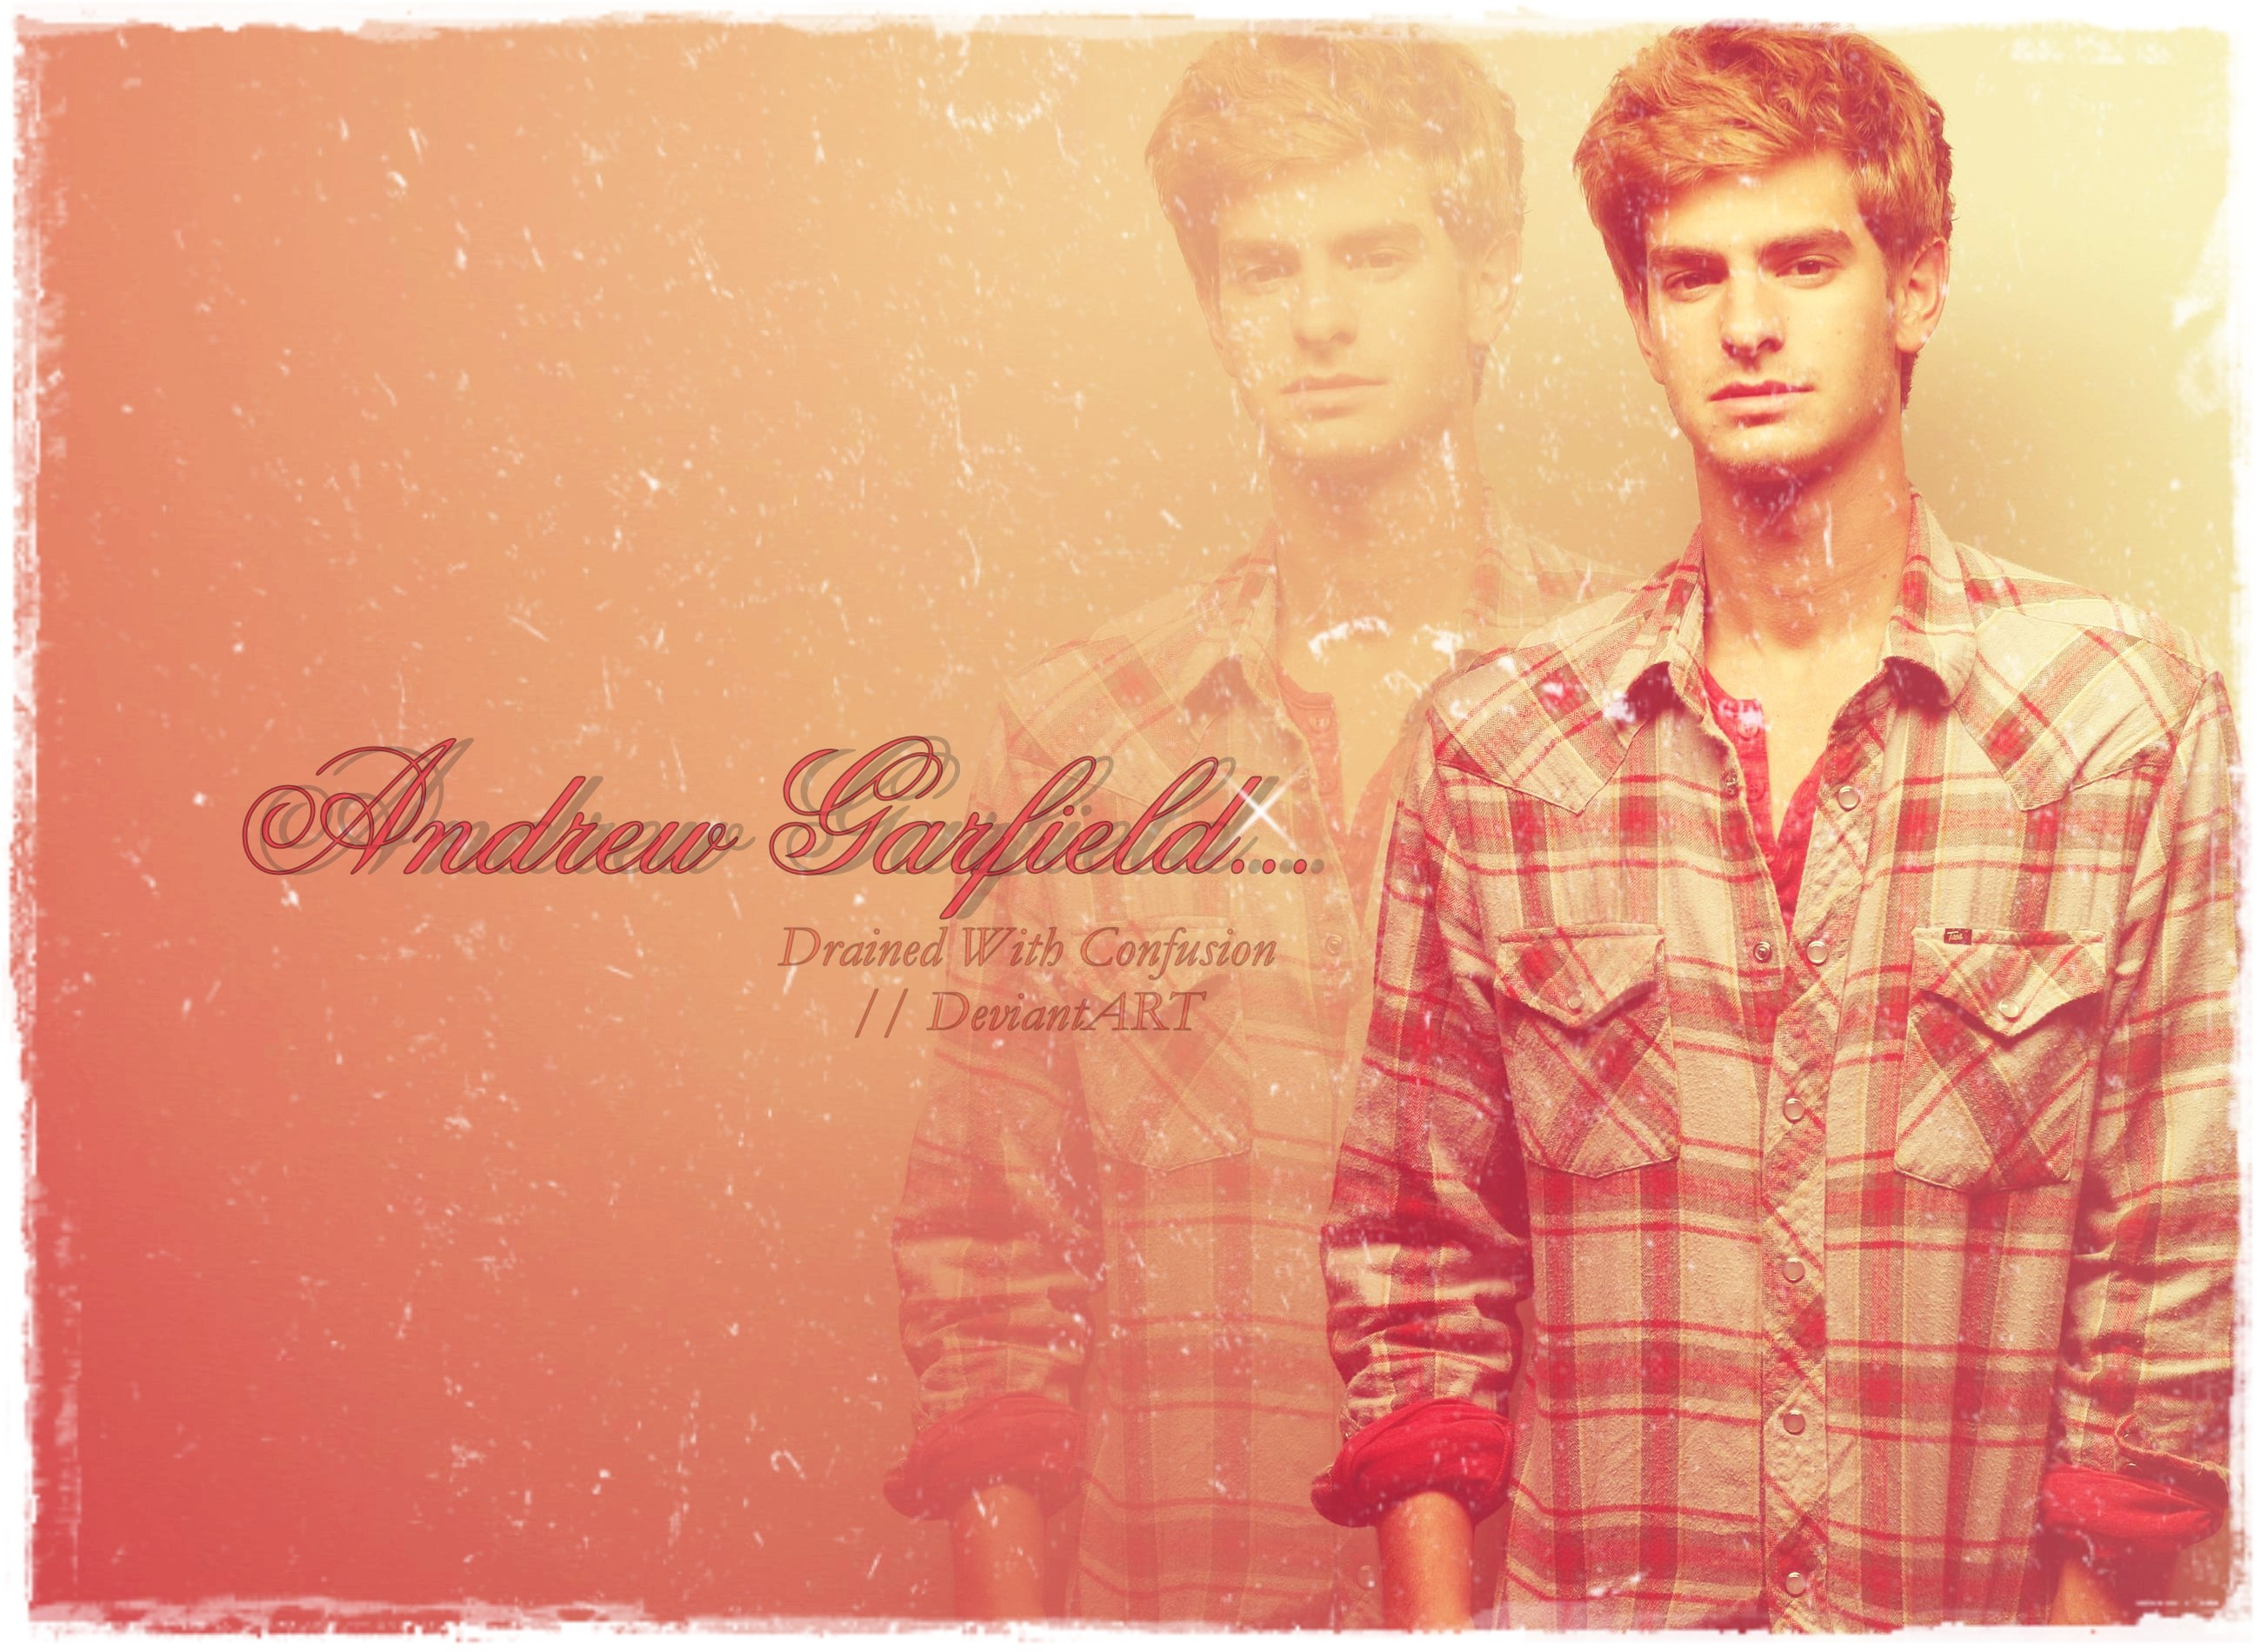 2600x1900 Andrew Garfield Wallpaper 1 by DrainedWithConfusion Andrew Garfield  Wallpaper 1 by DrainedWithConfusion